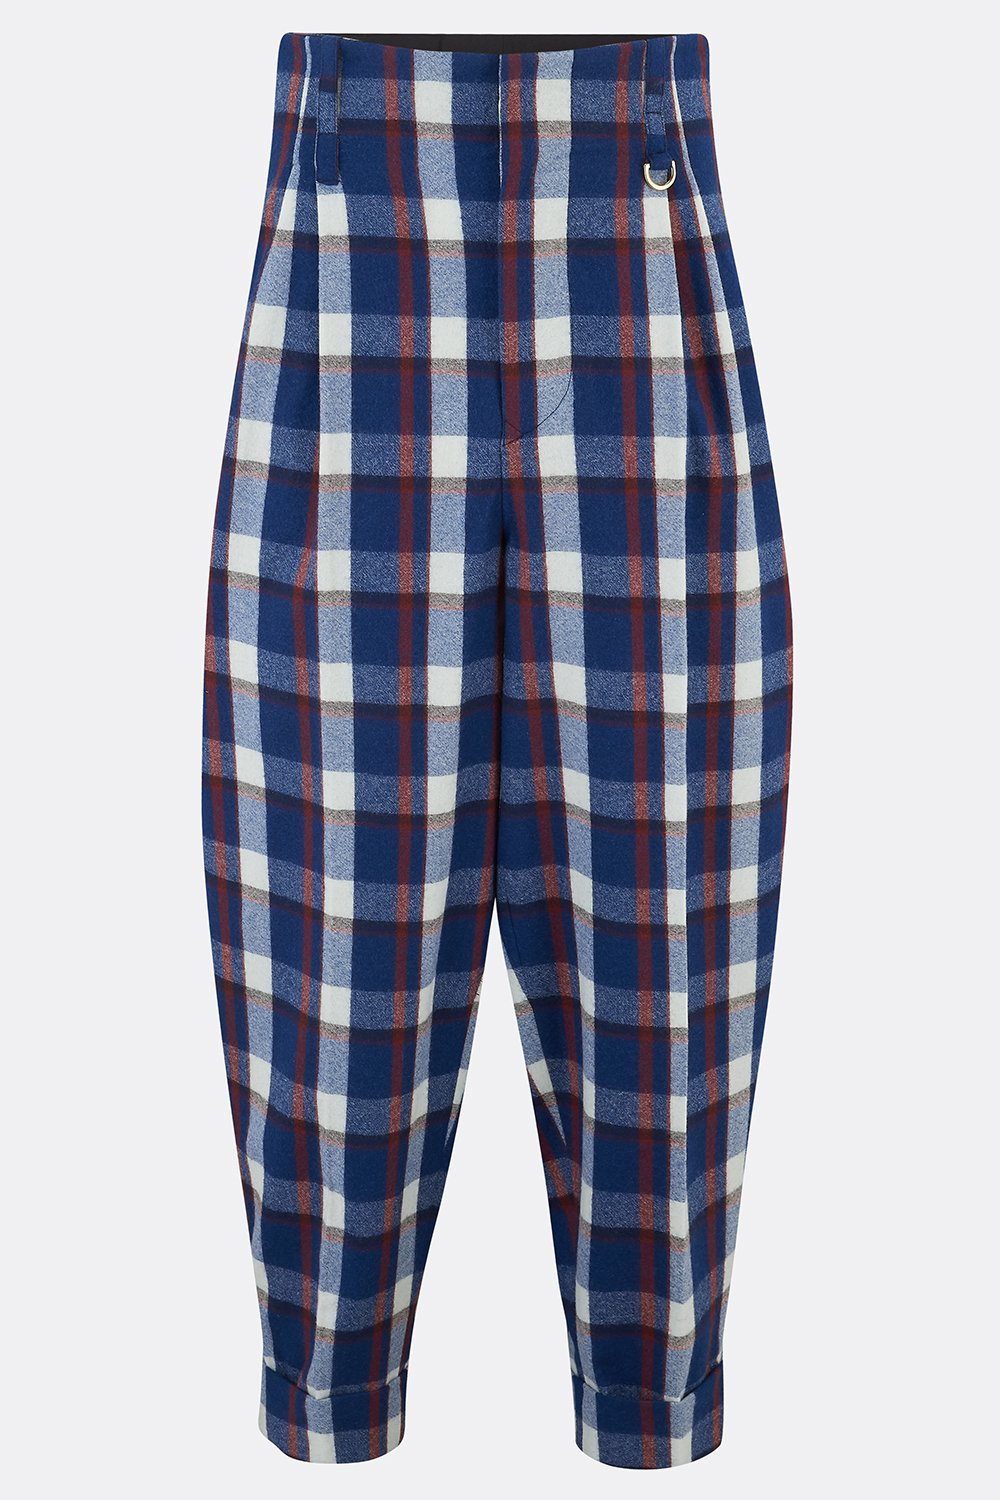 DILLINGER TROUSERS IN BLUE WHITE CHECK-menswear-A Child Of The Jago